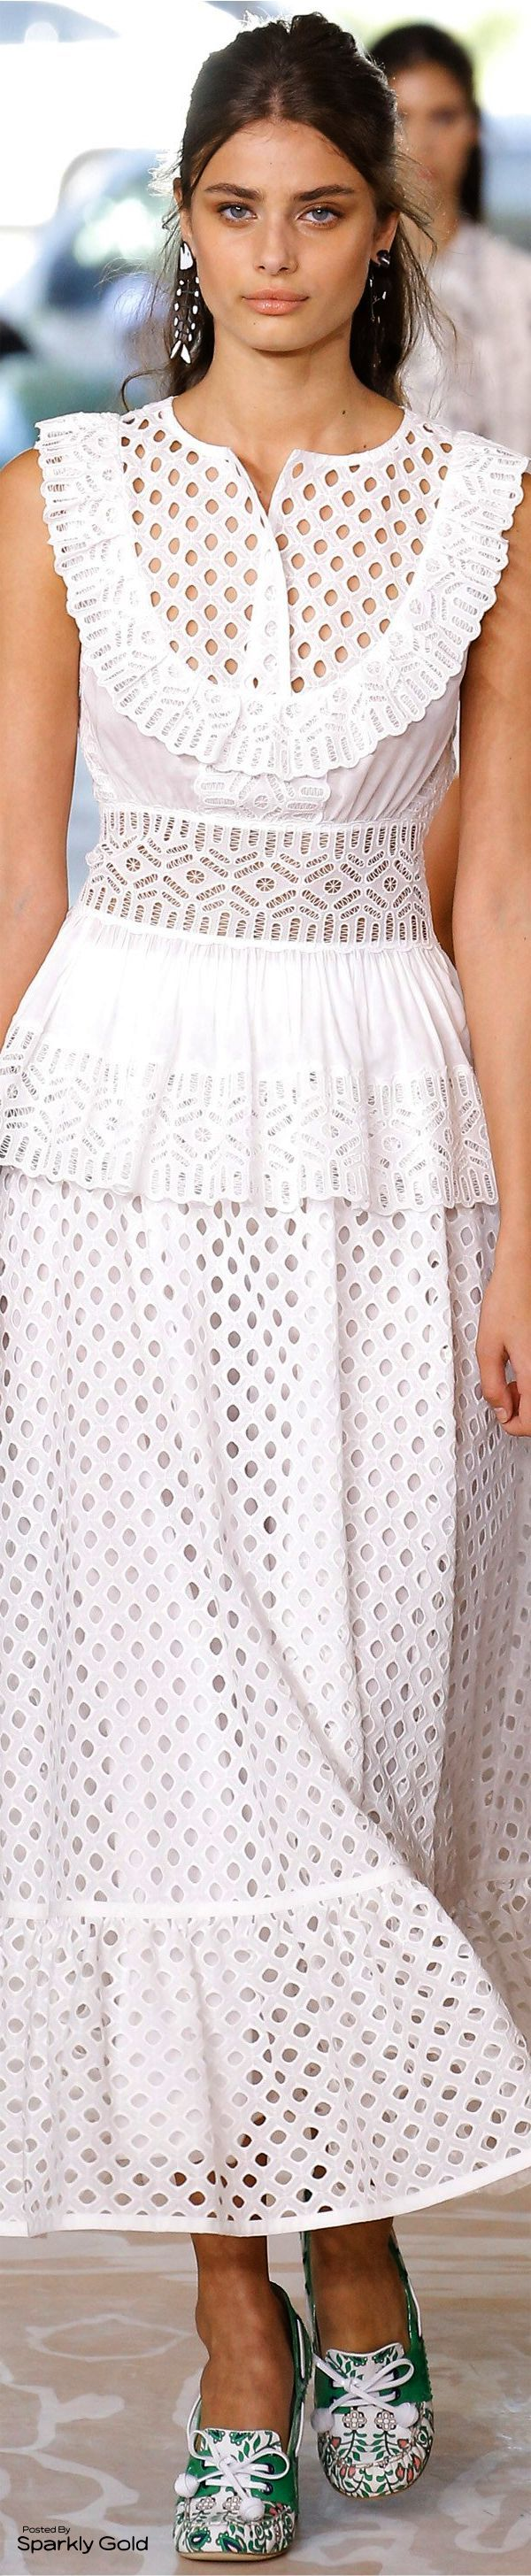 I don't normally like Tory Burch, but the shape of this dress looks like it would be very flattering and cute. #spring_style_petite